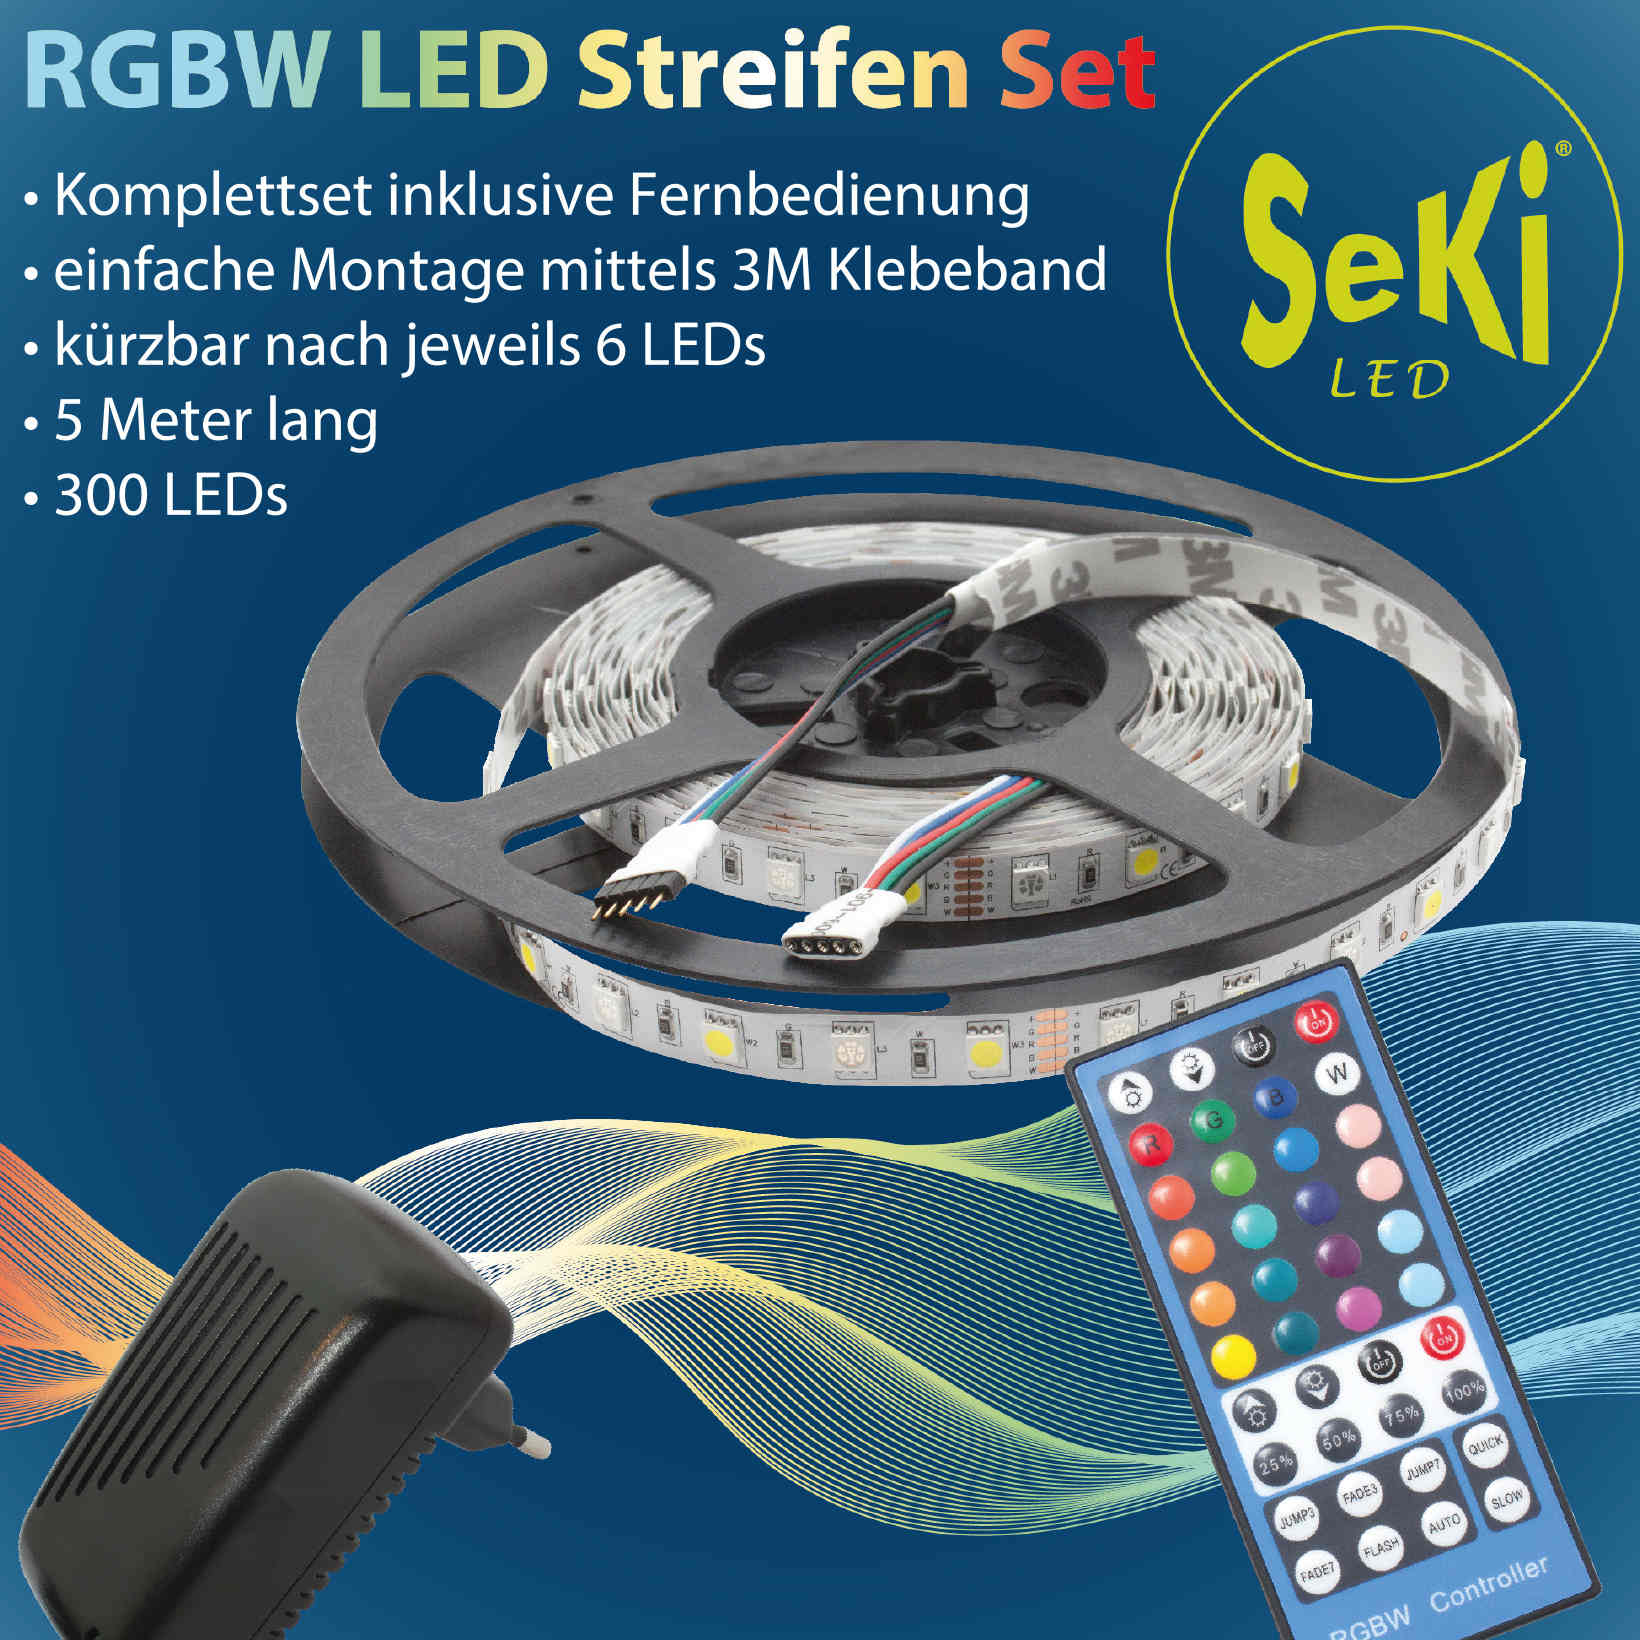 LED RGBW Set (RGBW 300LEDs, Controller, Power Supply)